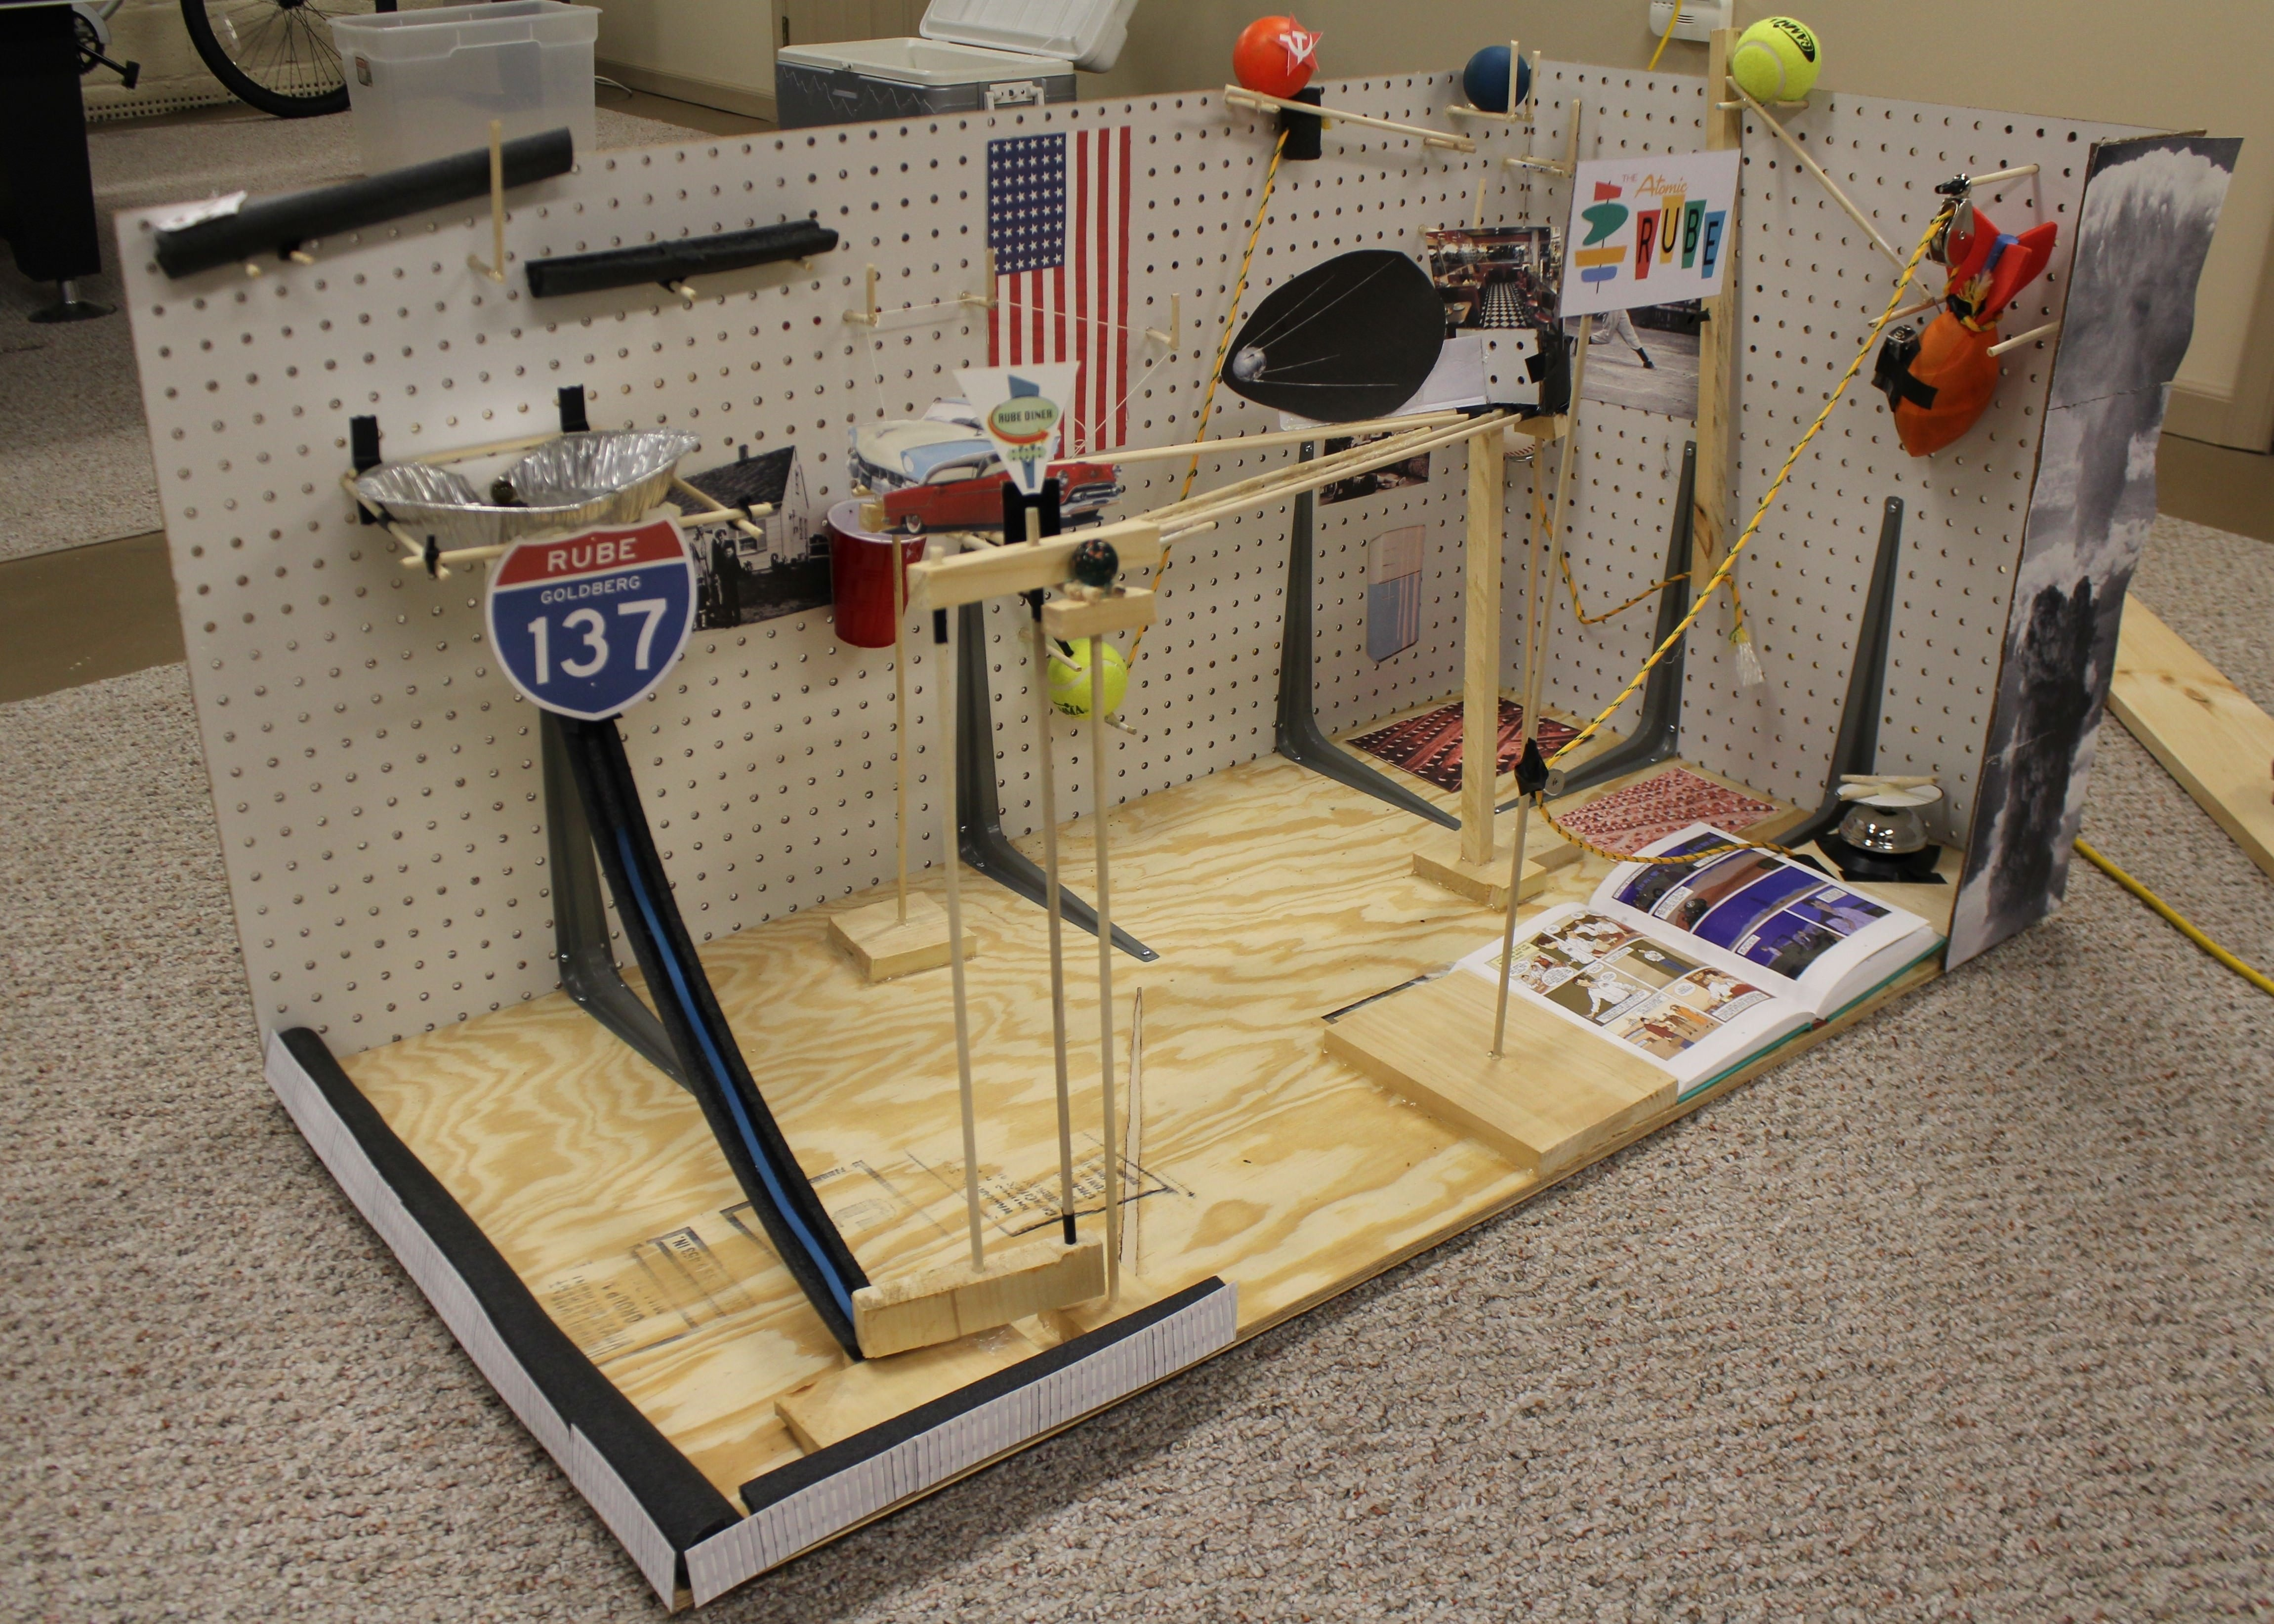 10 Most Recommended Ideas For Rube Goldberg Project rube goldberg projects coursework service 2021